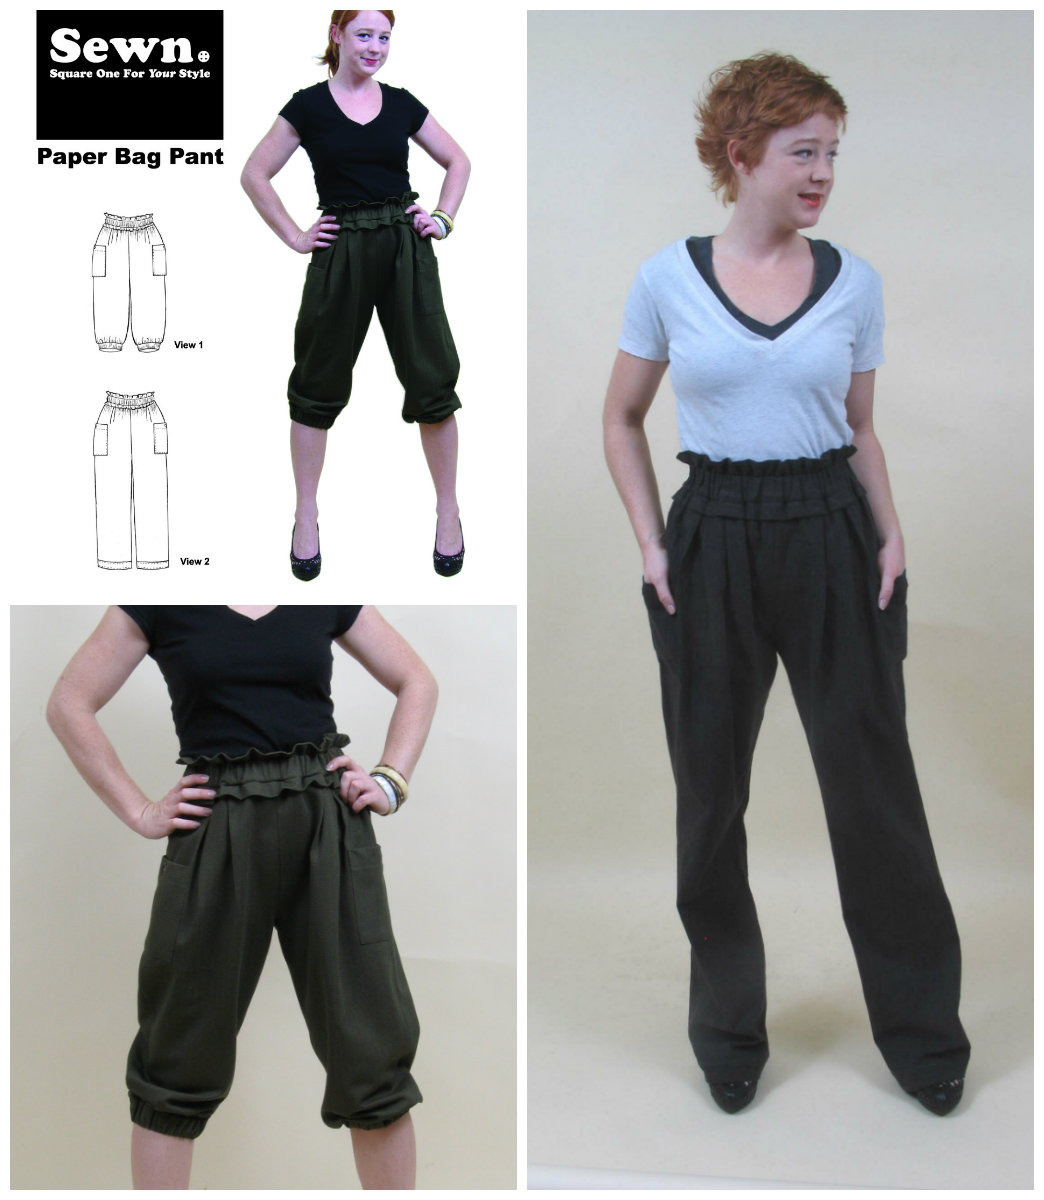 Paper bag waist pants pattern - Sewn Square One Paper Bag Pant 1005